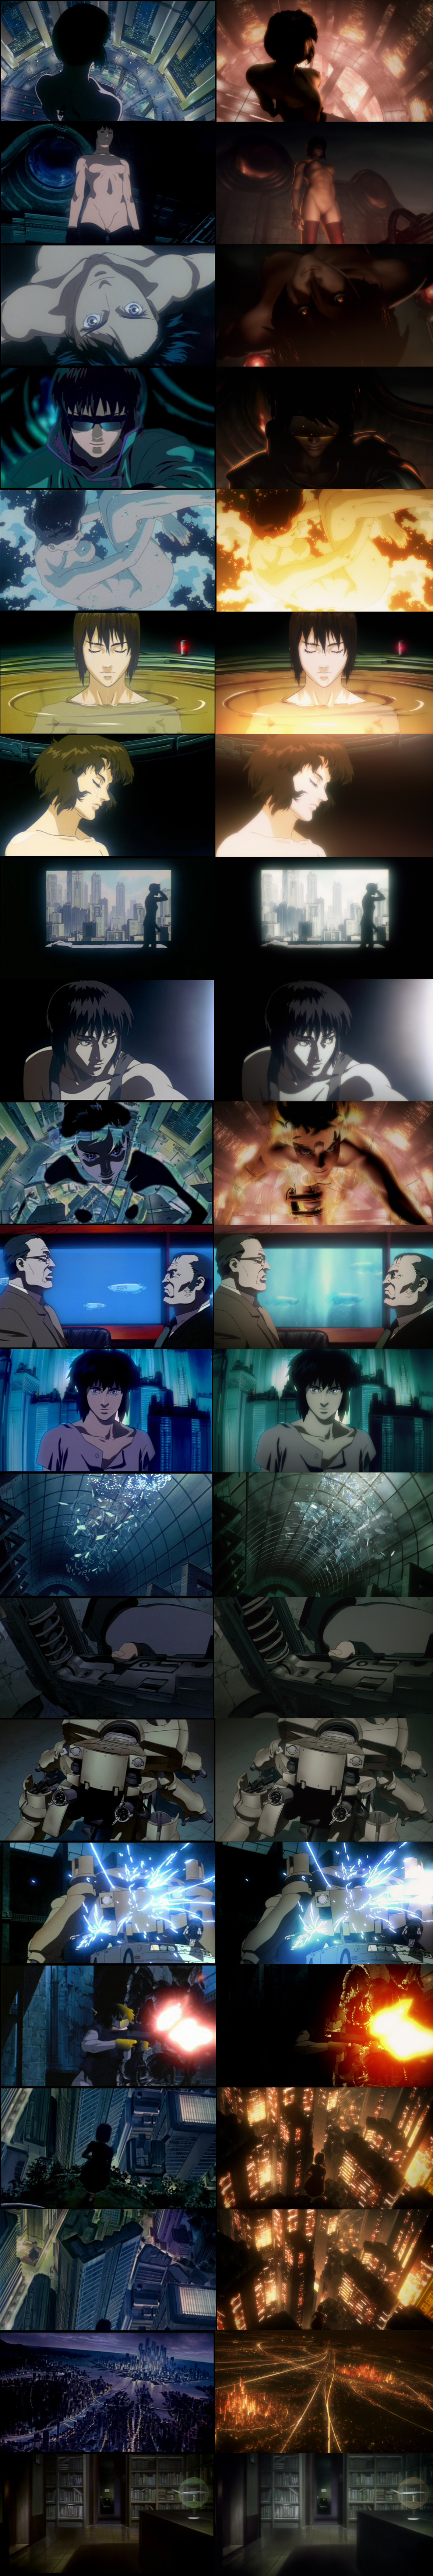 Anipages Discussion Forum View Topic Ghost In The Shell 2 0 Comparison